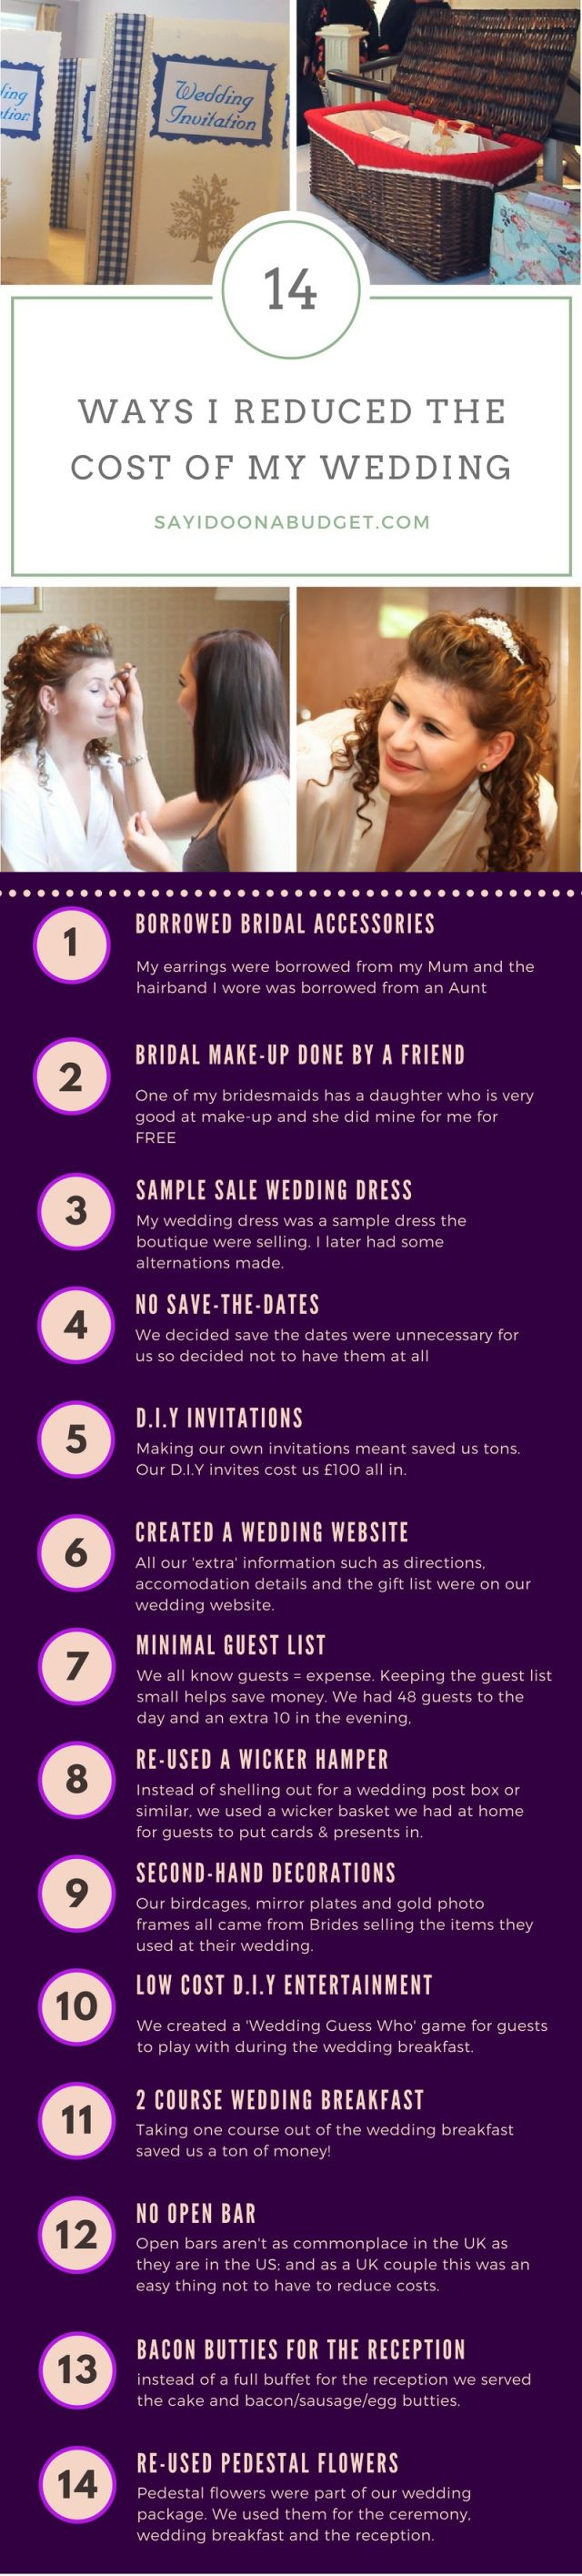 14 ways to reduce wedding cost of my wedding. How you can get married to less. Getting married on a small budget. Budget wedding.